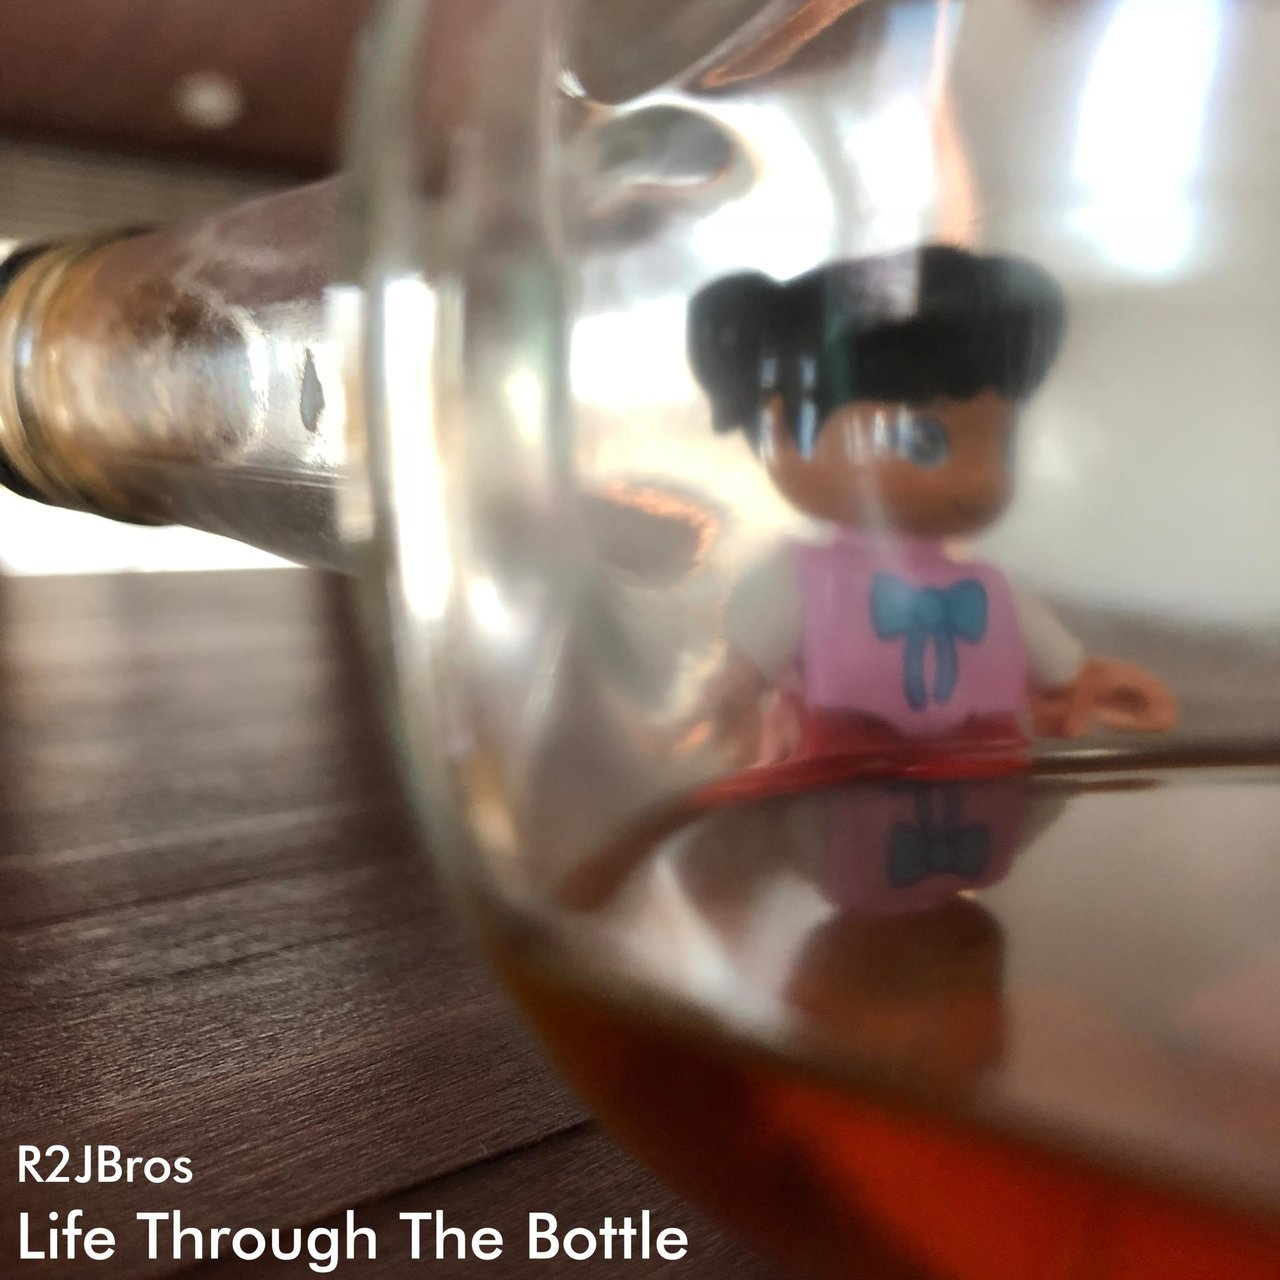 Life Through the Bottle